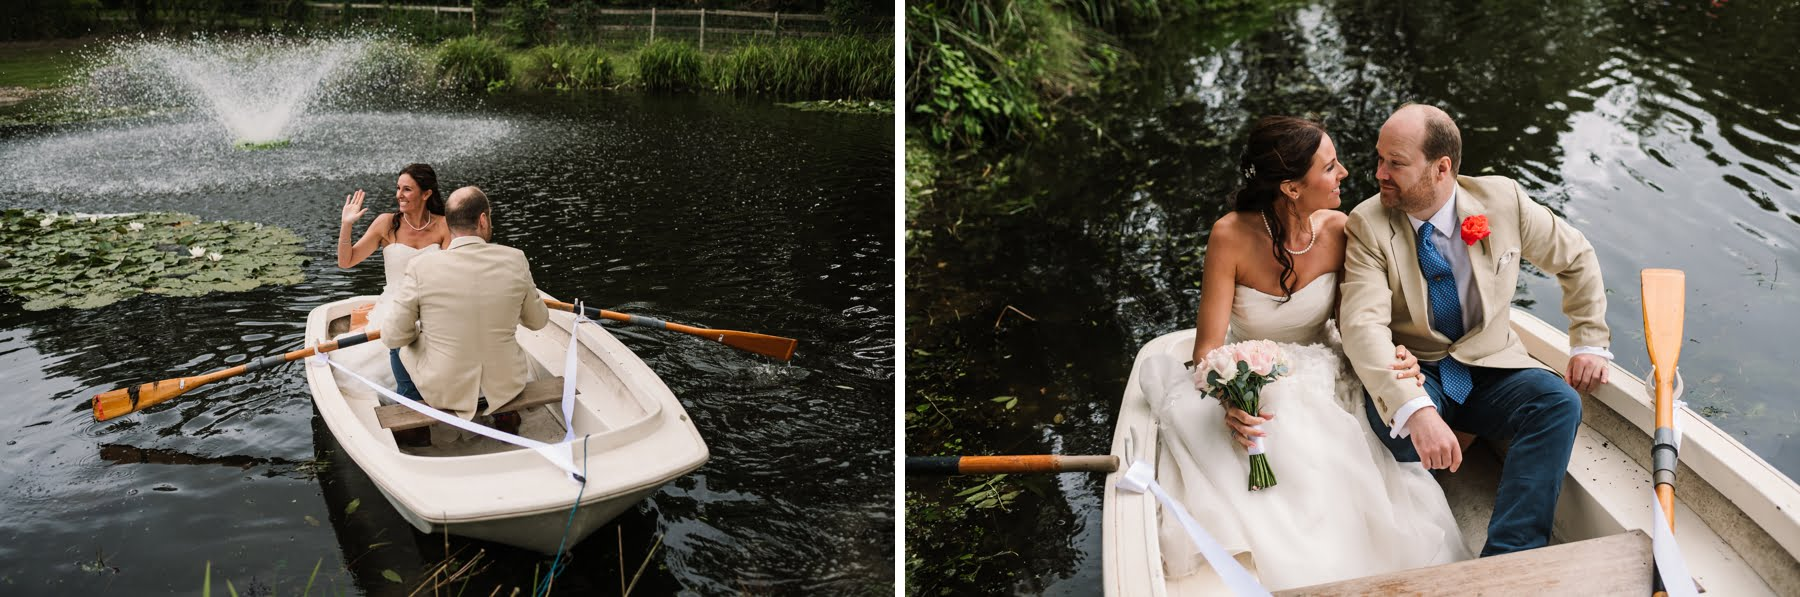 Dorset wedding rowing boat